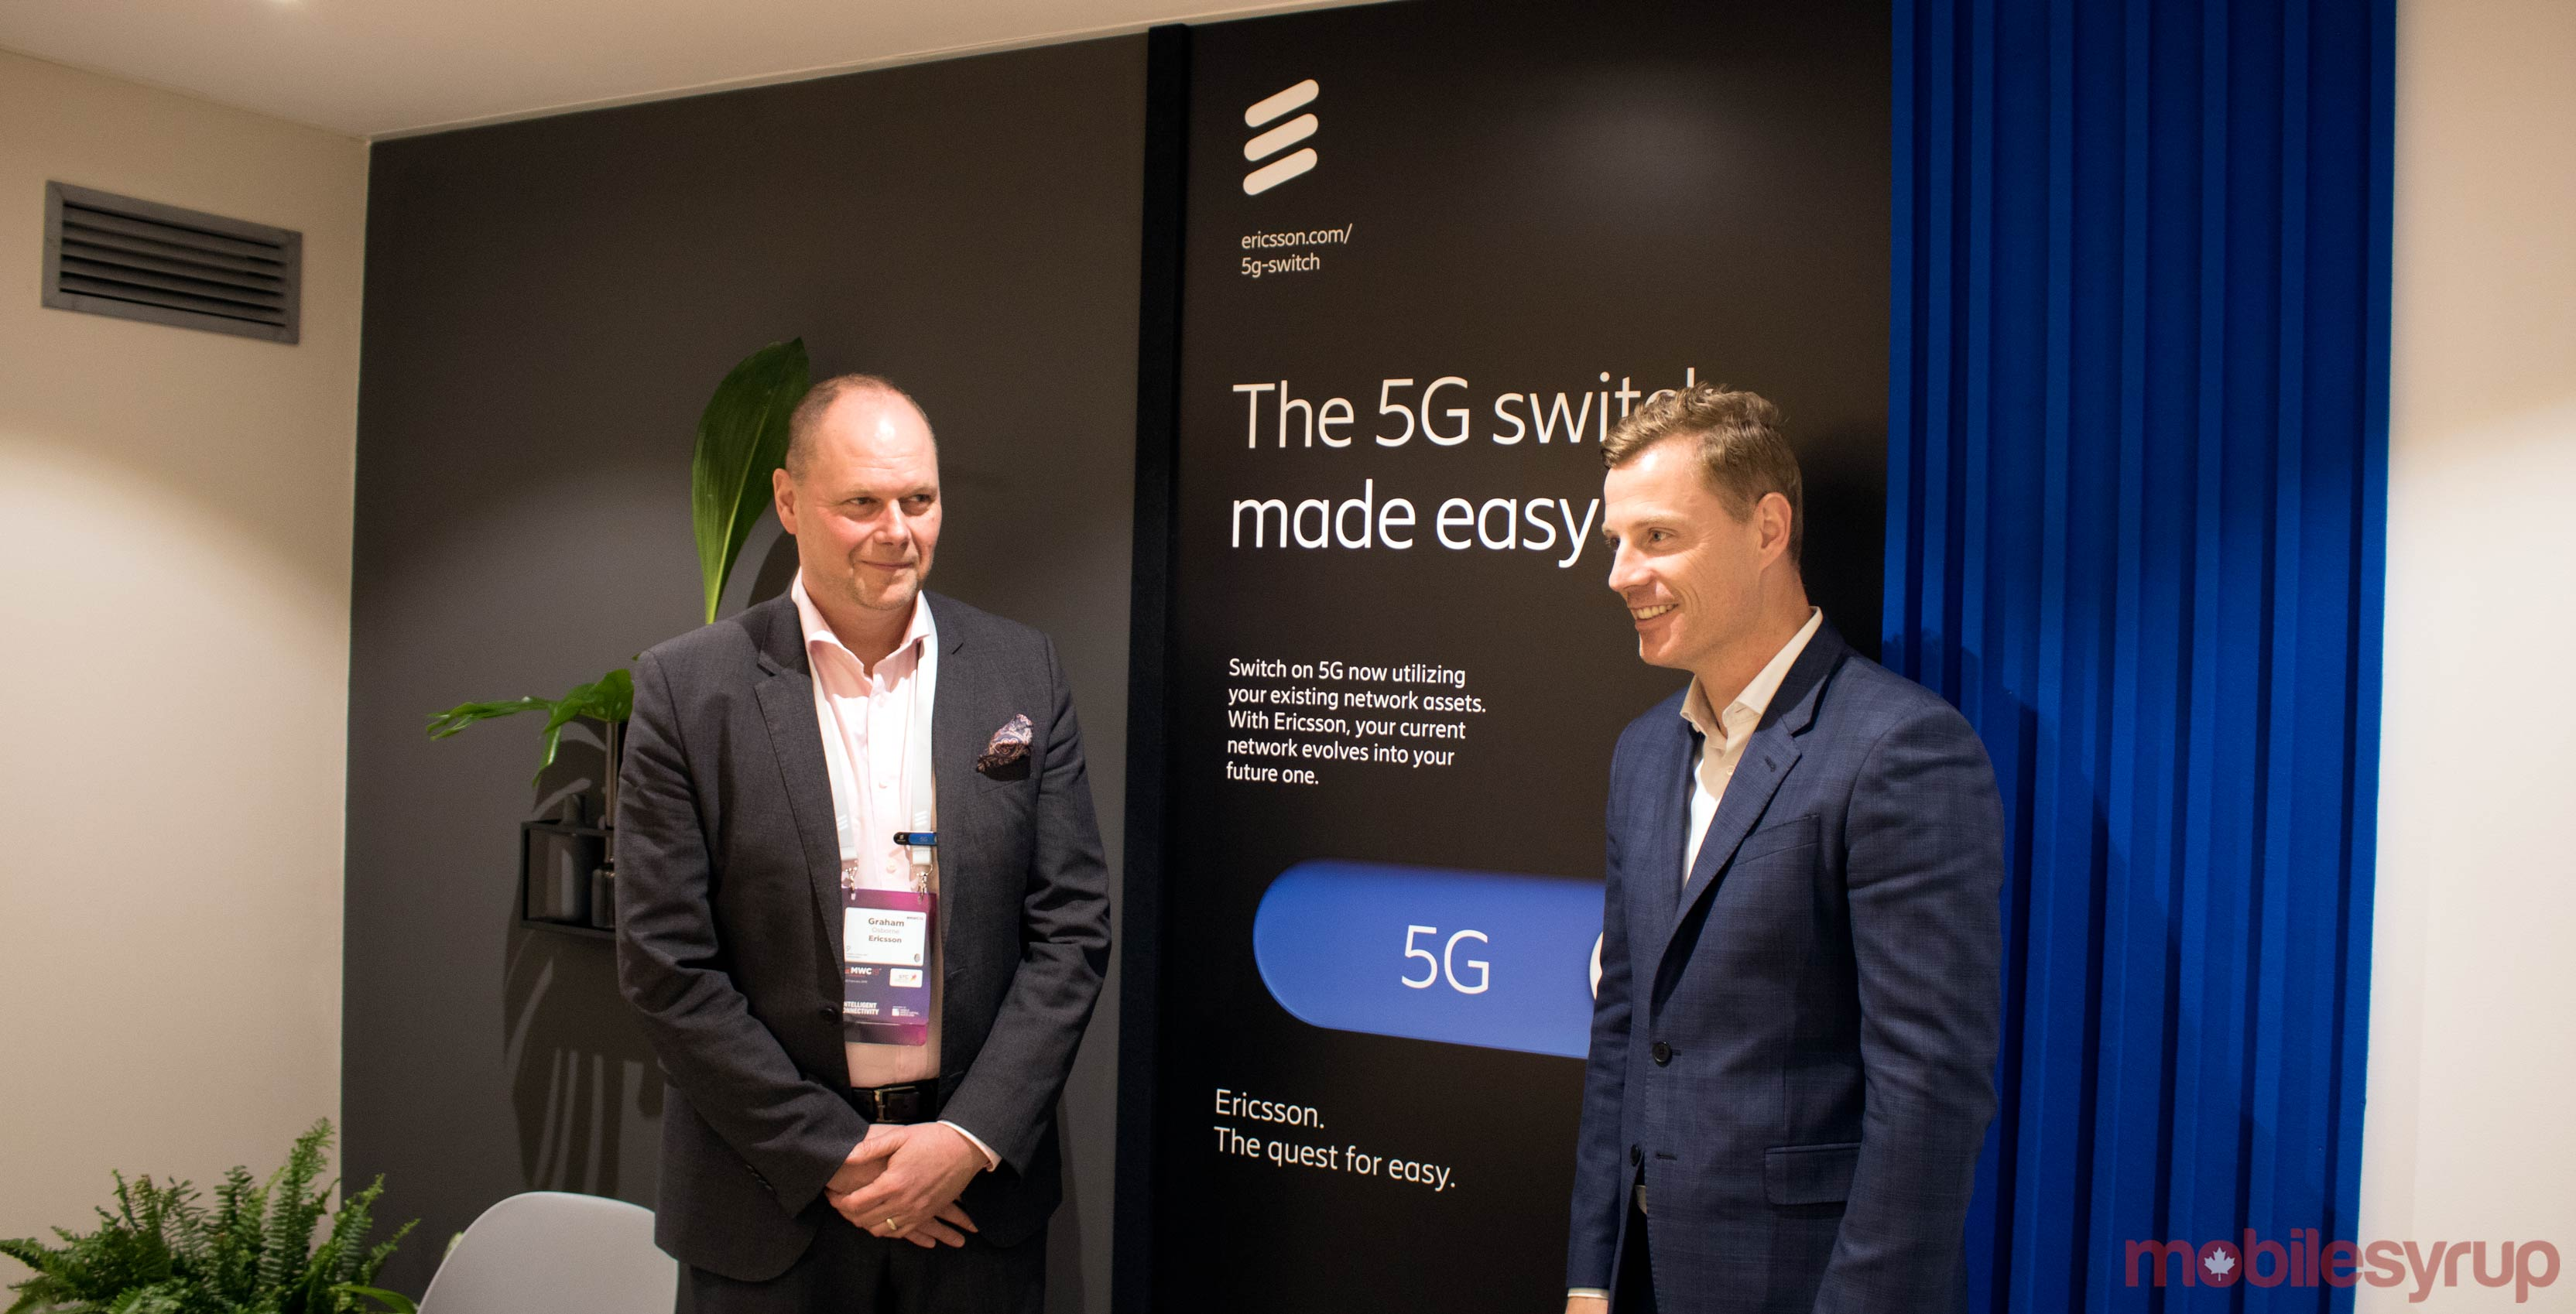 Ericsson's 5G equipment is ready for all Canadian carriers